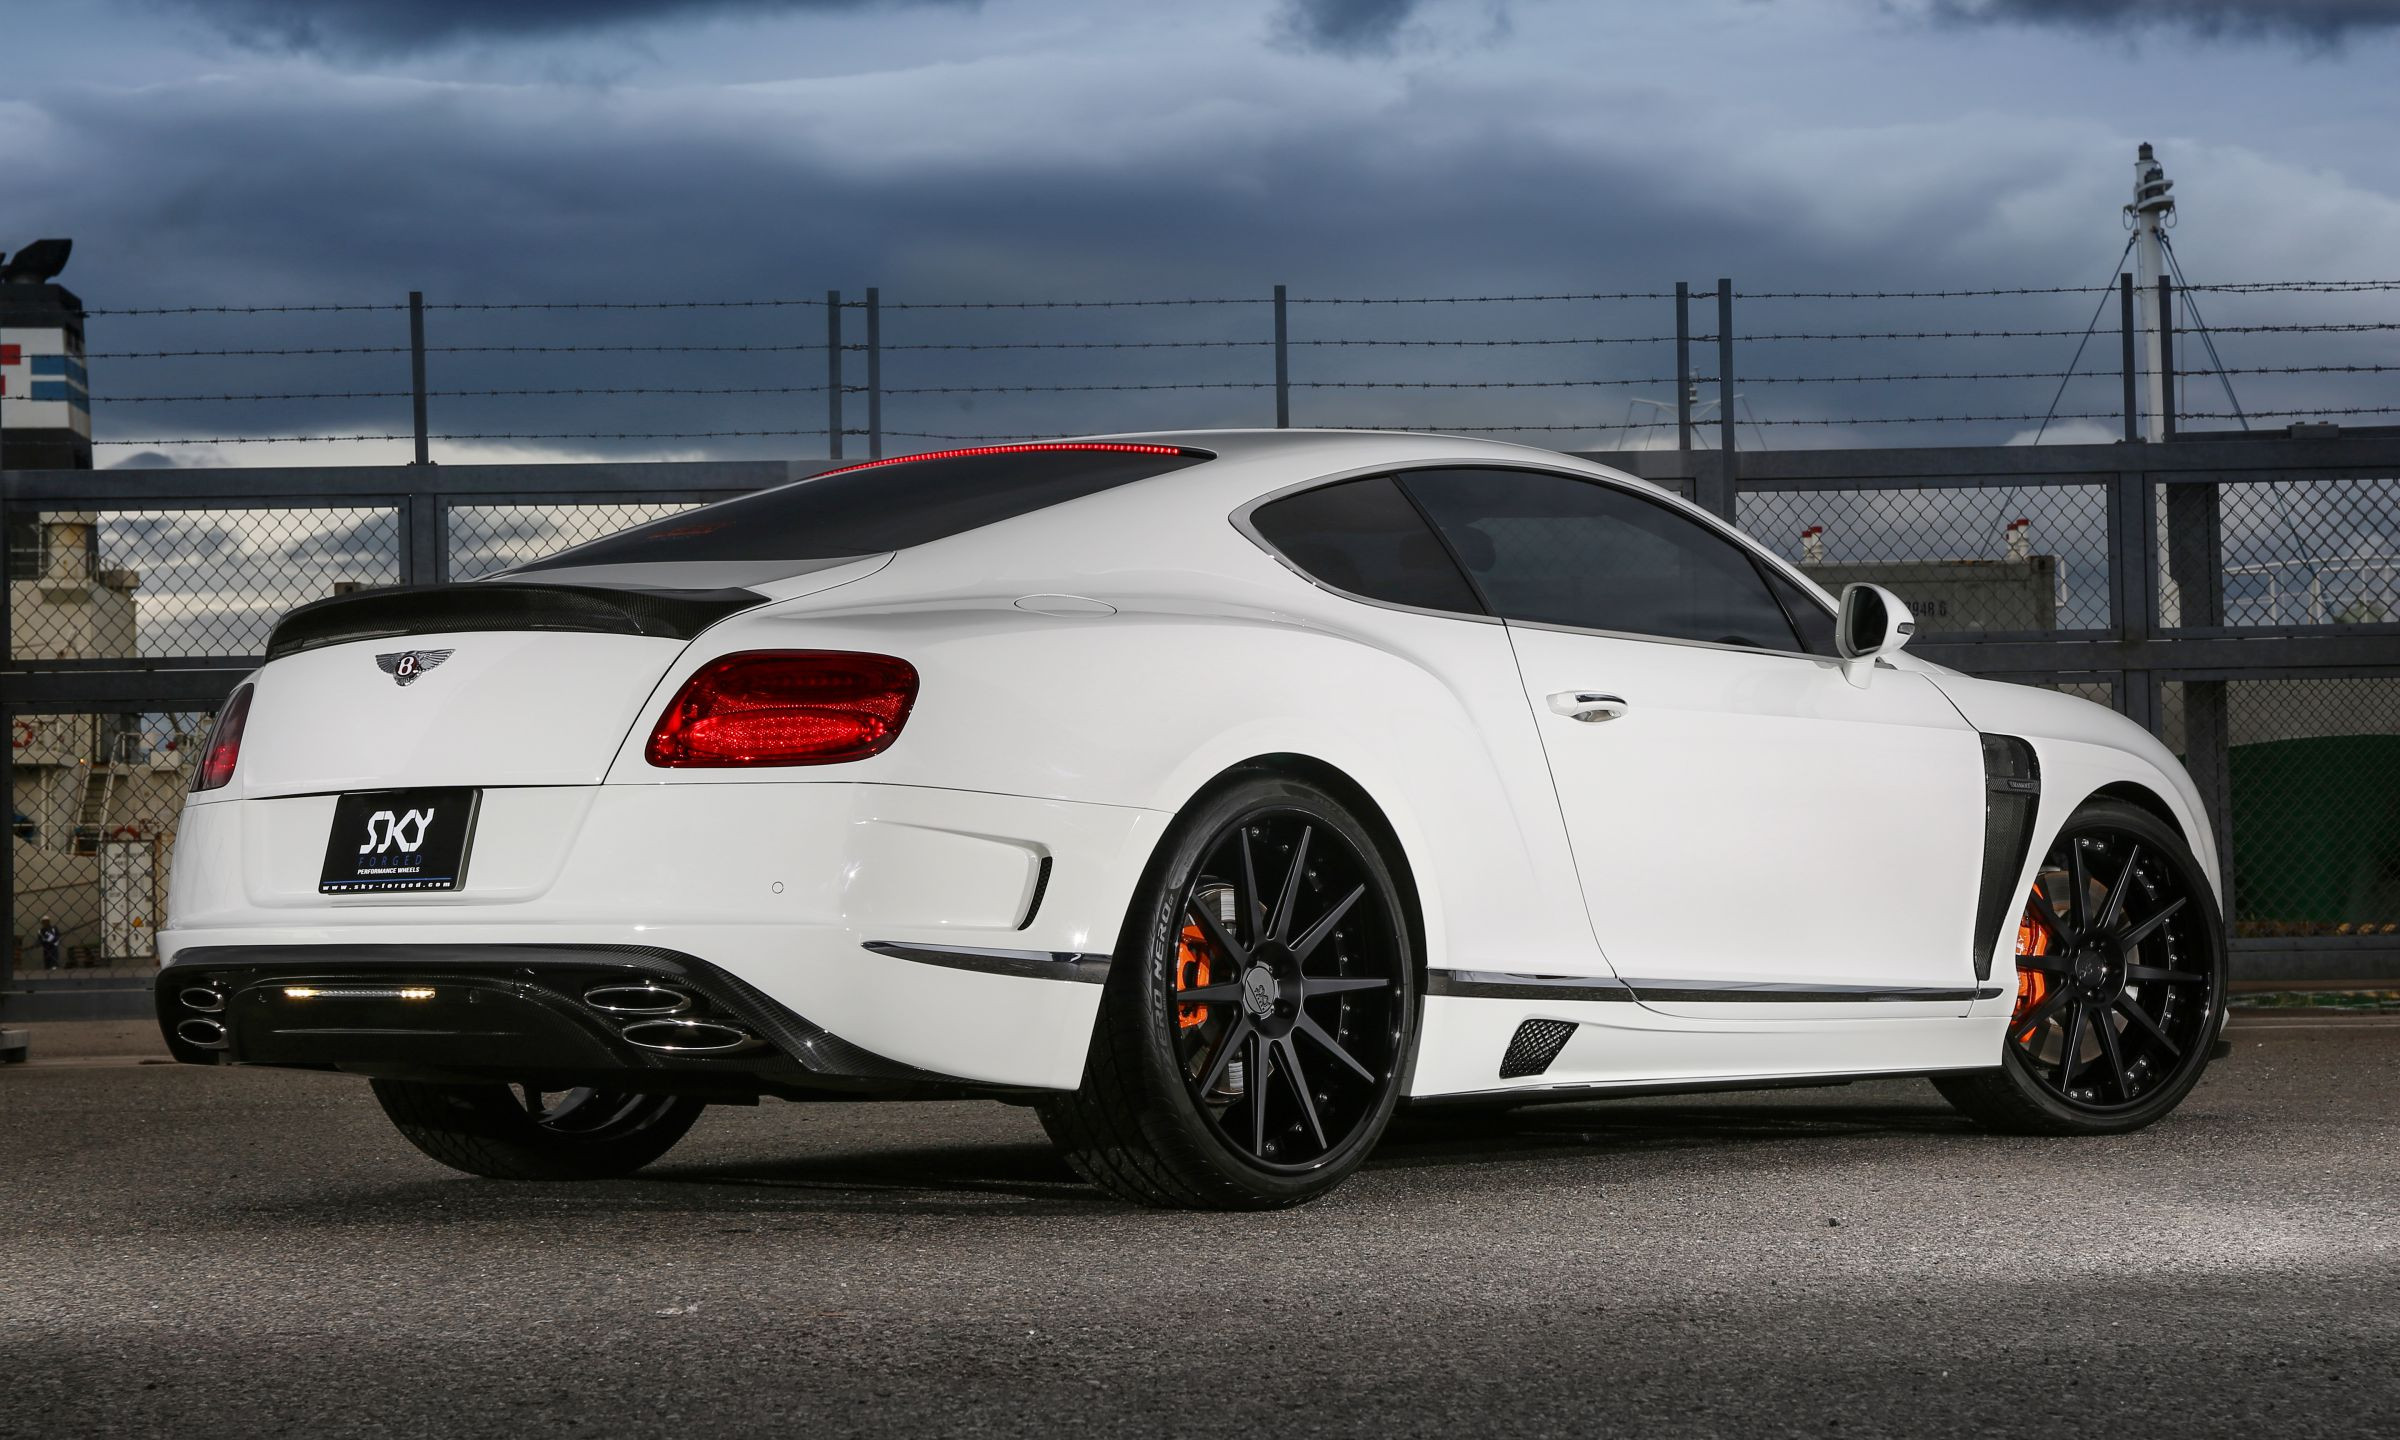 SKY Forged Mansory Bentley GT